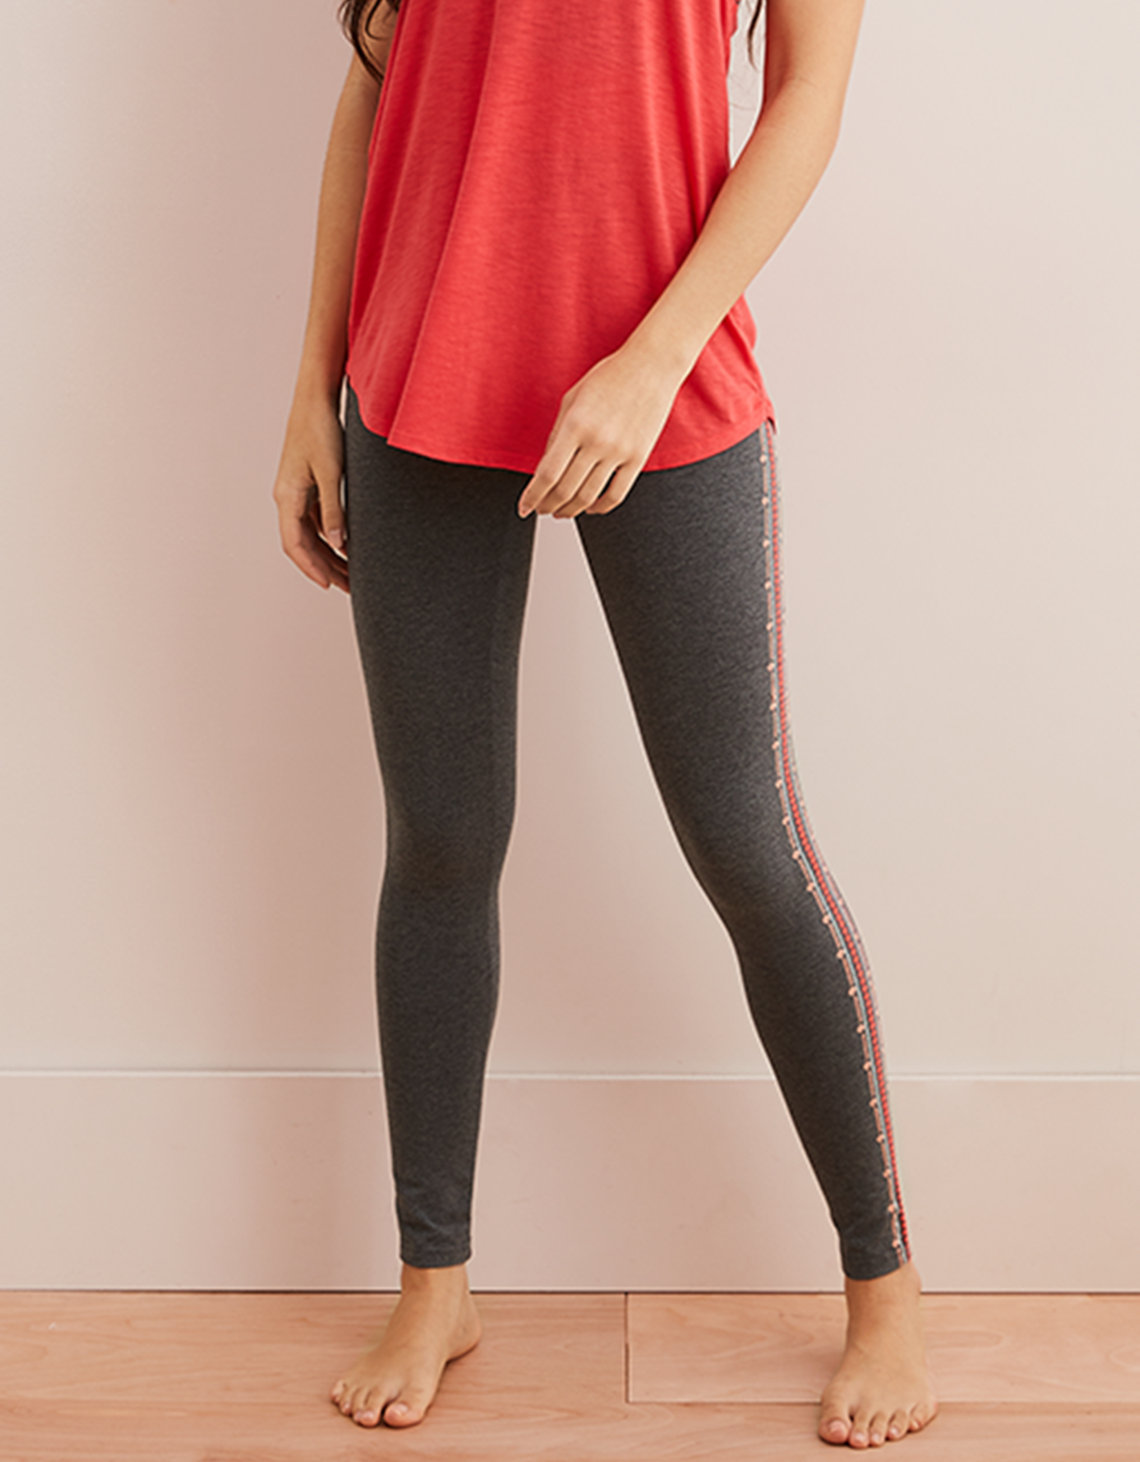 10985816d6390 Aerie Chill High Waisted Legging, Iron Heather | Aerie for American ...